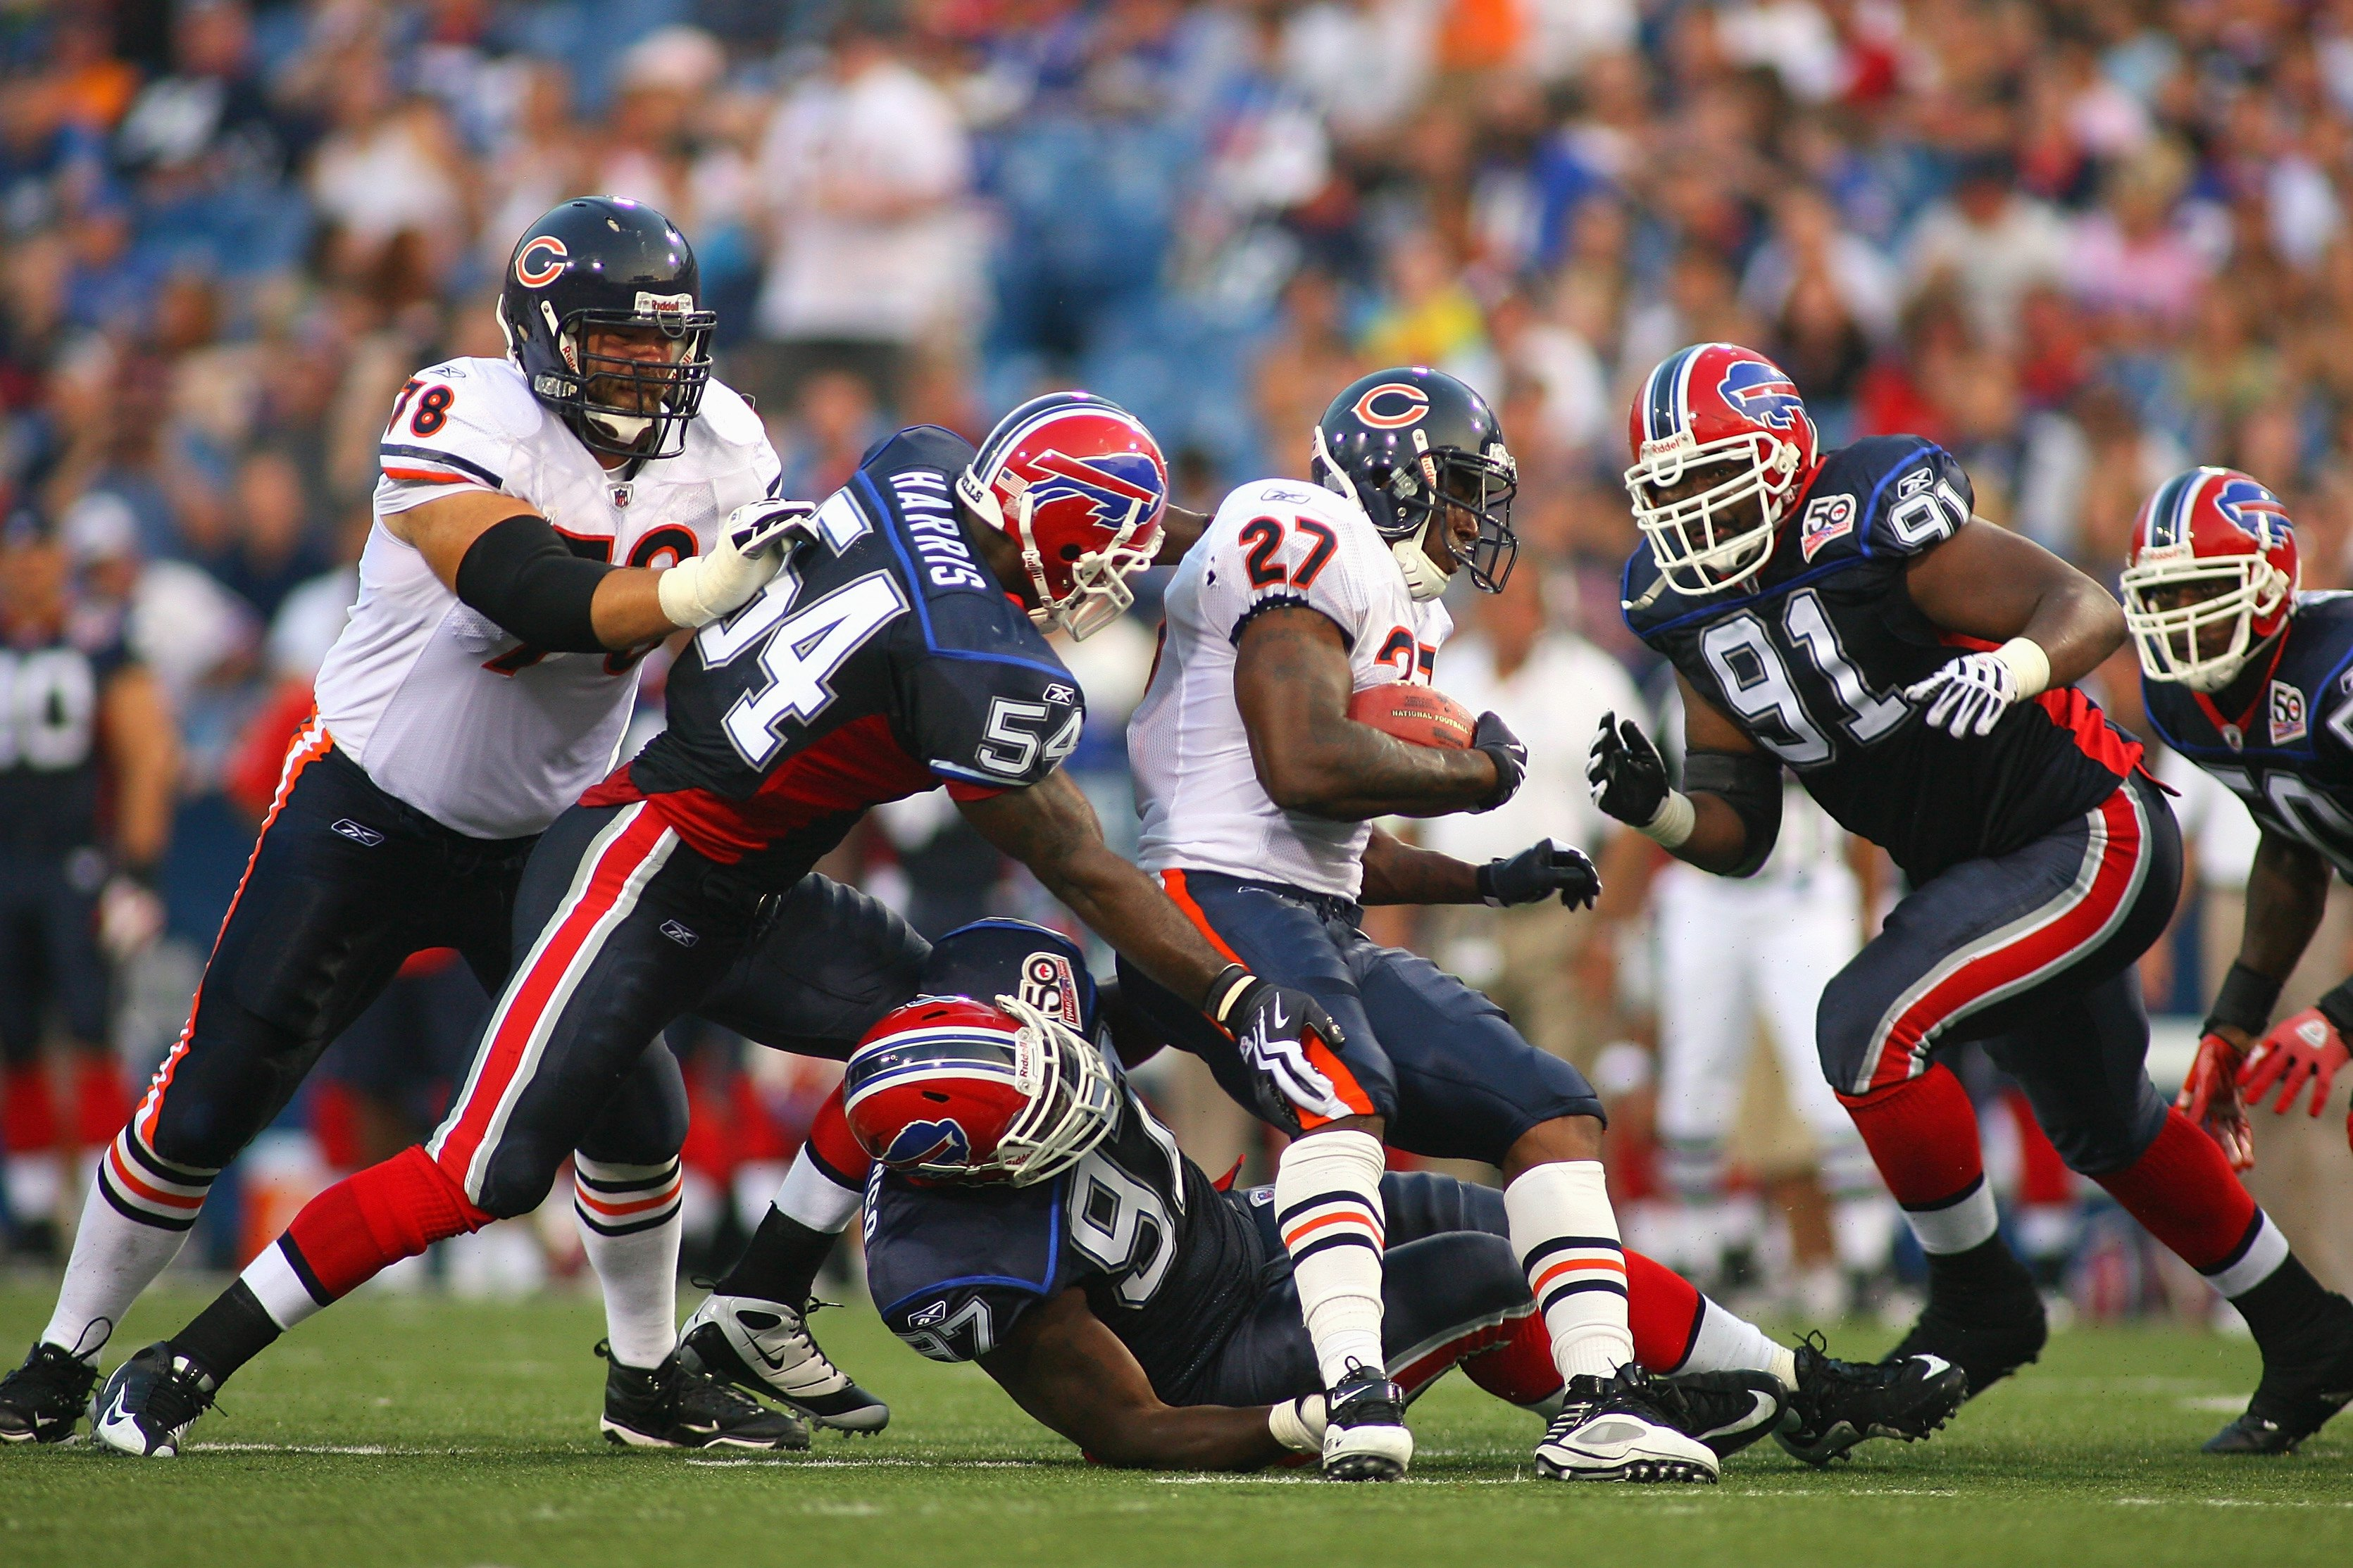 ORCHARD PARK, NY - AUGUST 15:  Running back Kevin Jones #27 of the Chicago Bears is tackled by John McCargo #97 and Nic Harris #54 of the Buffalo Bills during the preseason game on August 15, 2009 at Ralph Wilson Stadium in Orchard Park, New York. The Bil